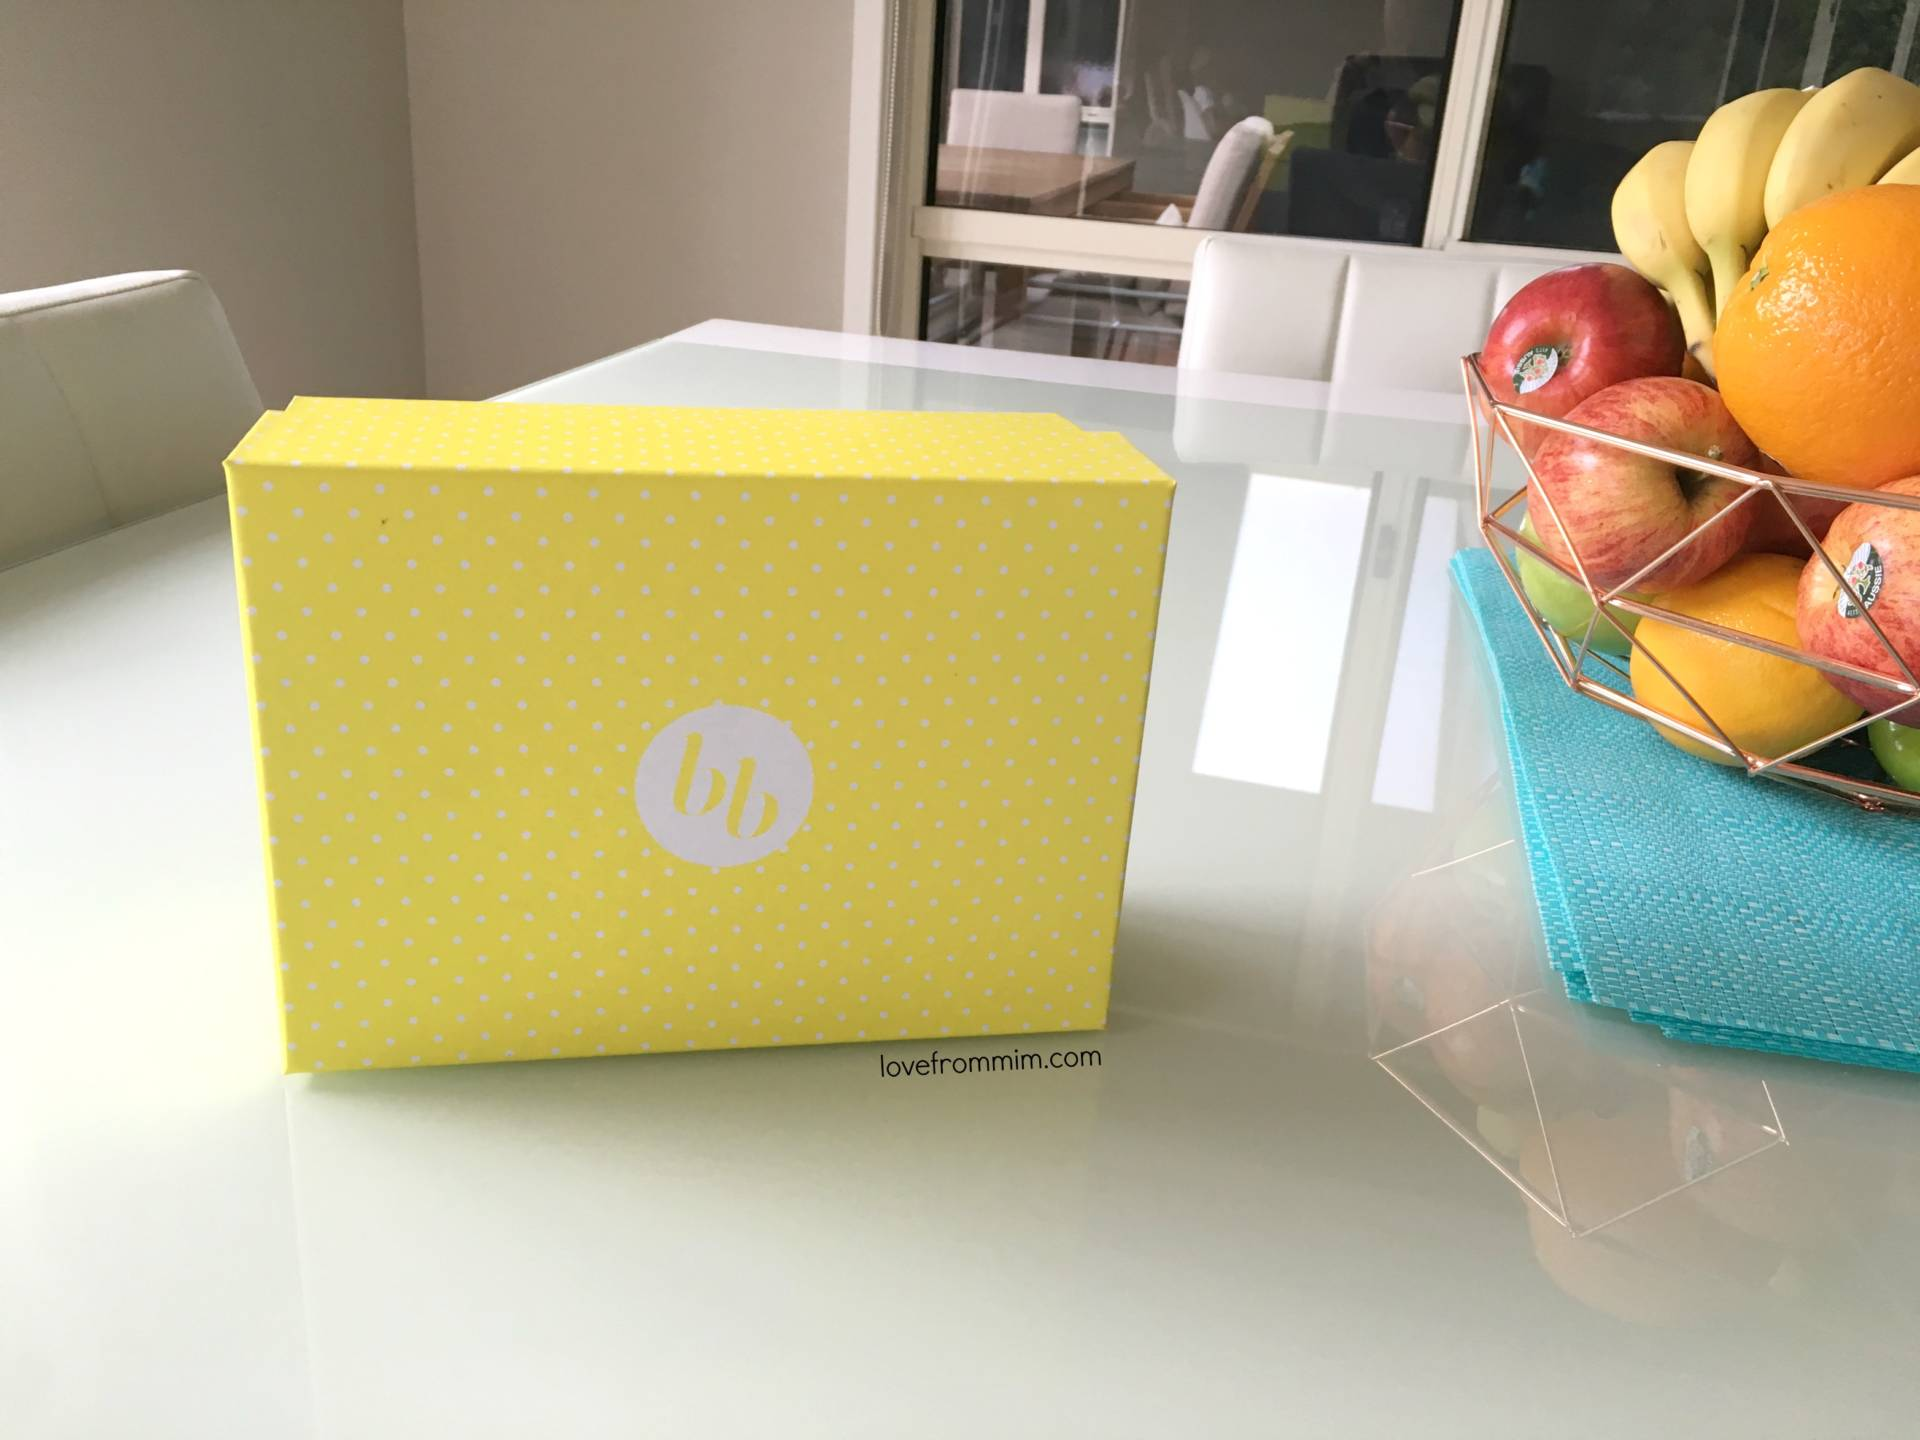 BellaBox BellaBaby Unboxing for April 2016 + Video! lovefrommim.com Monthly subscription box for mums and babies